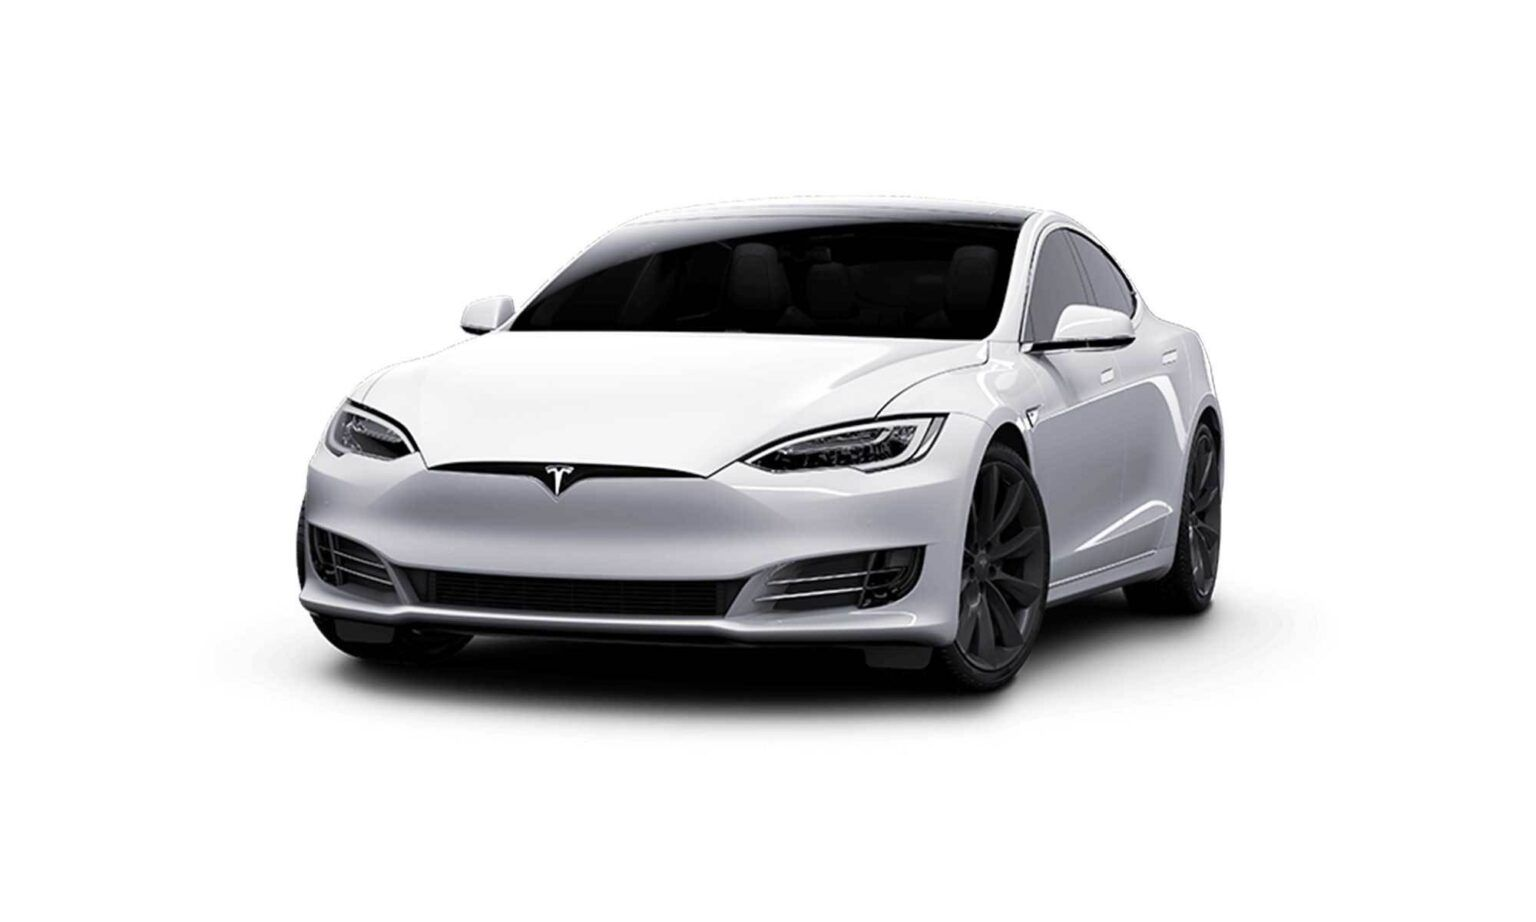 9 Best Electric Cars in 2020 With their Features and